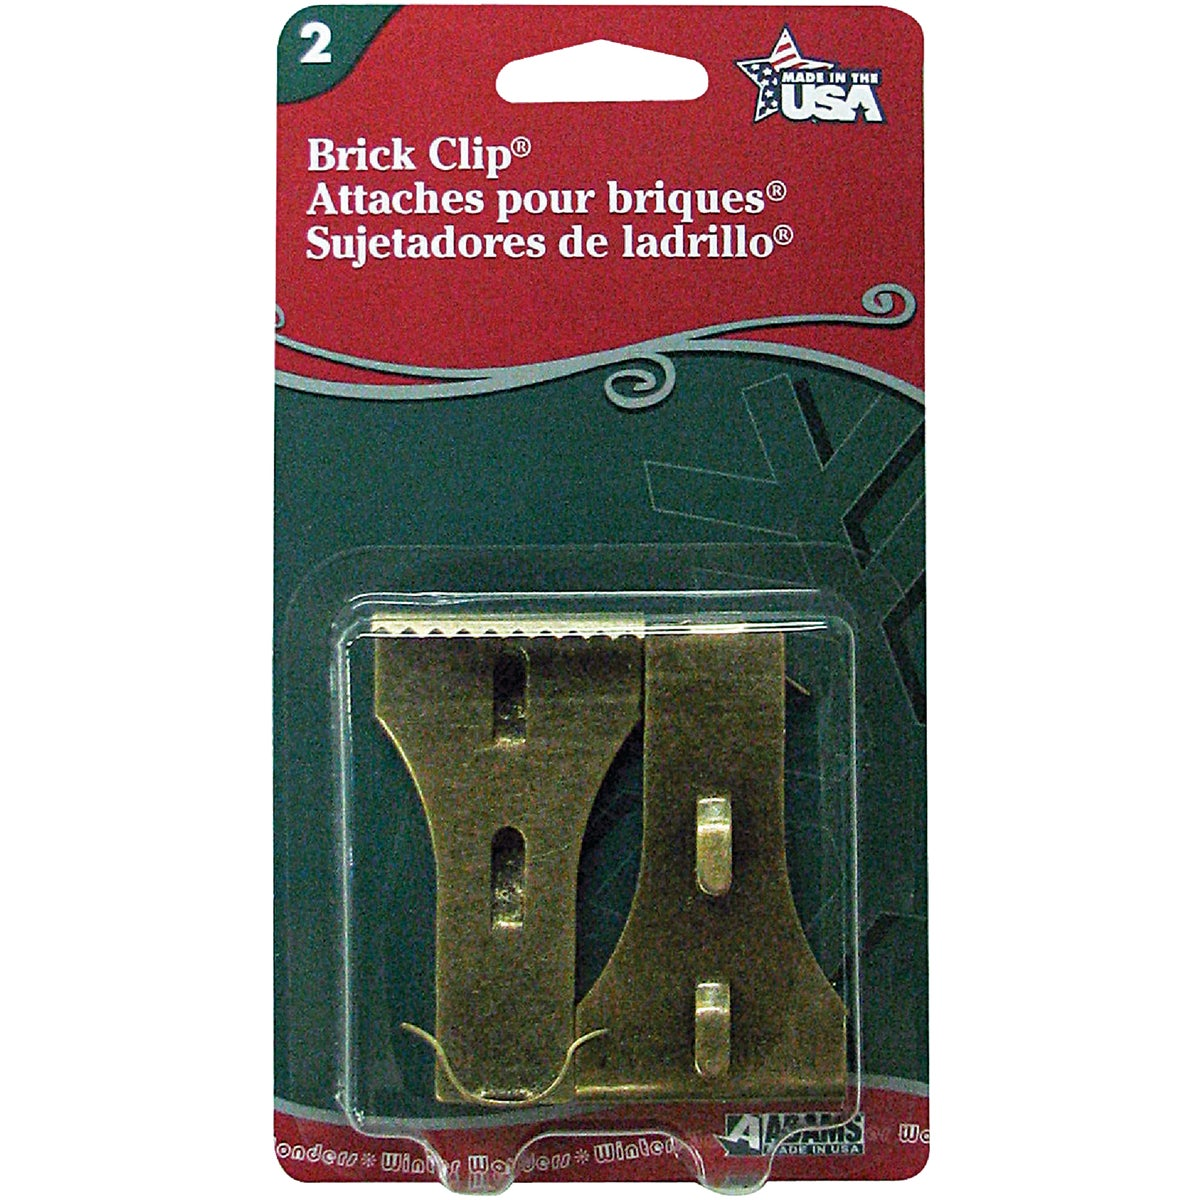 2PK BRICK CLIP - 1450991040 by Adams Mfg/christmas